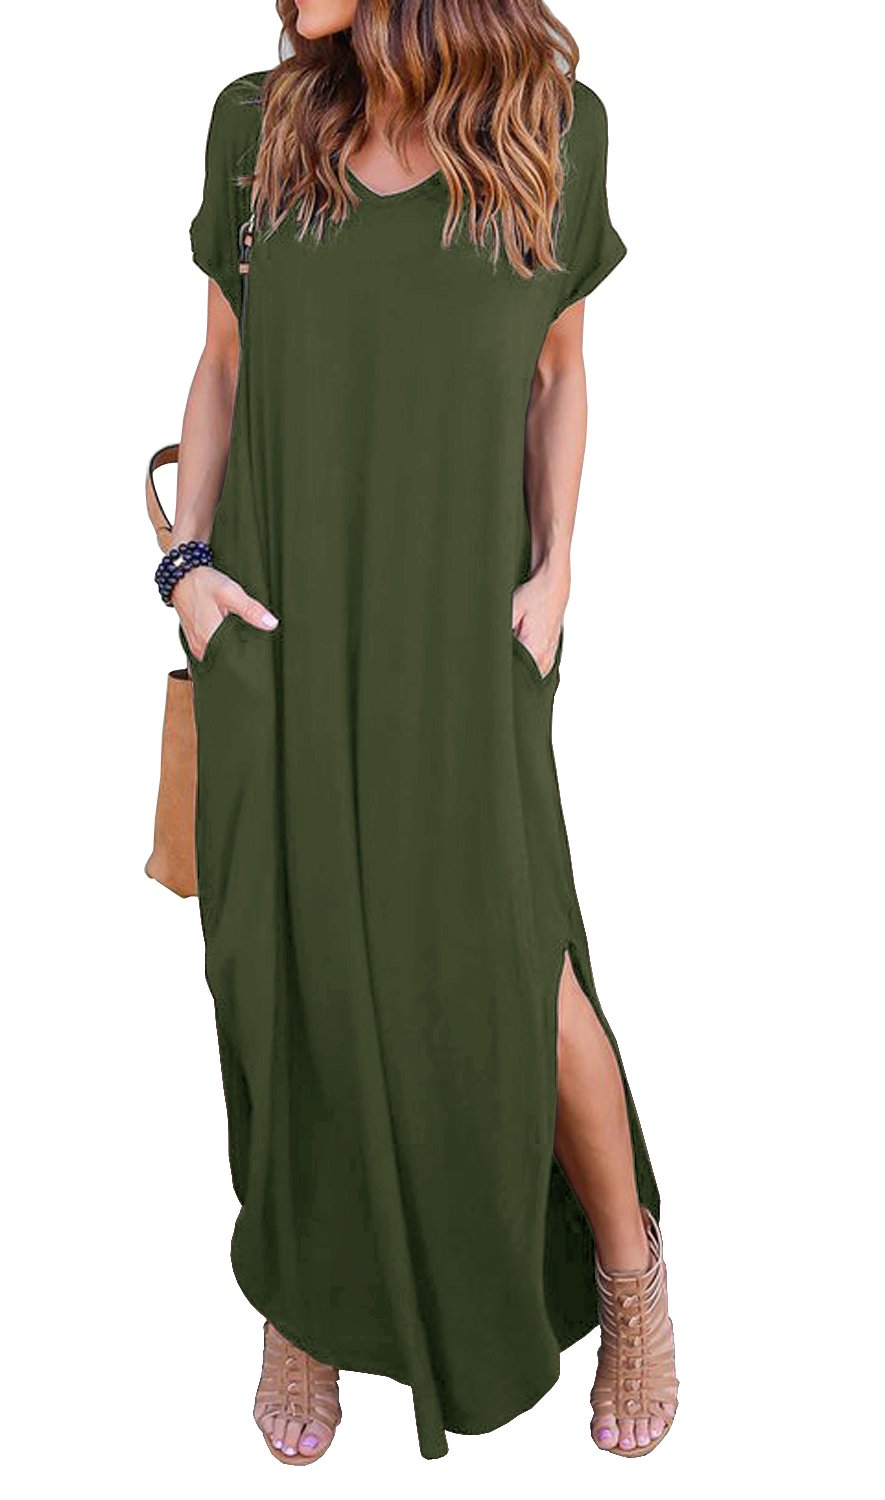 GRECERELLE Womens Casual V Neck Side Split Beach Dresses Long Maxi Dress Army Green 2XL